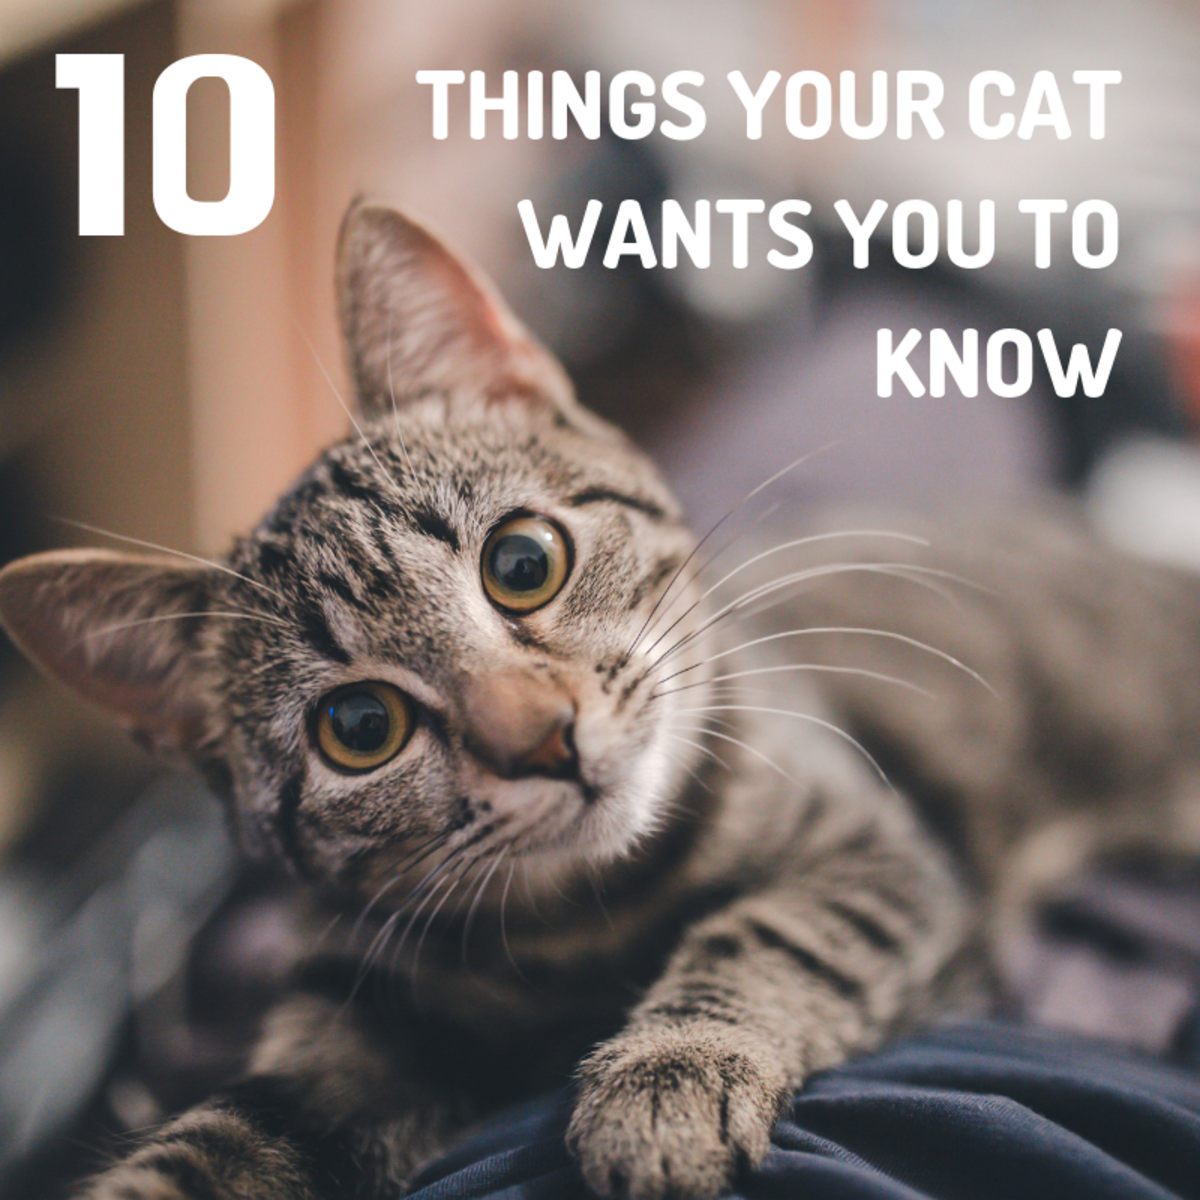 Cats make purrfect companions, but it's time you learned a few things about your four-legged friends. They're ready to dish.